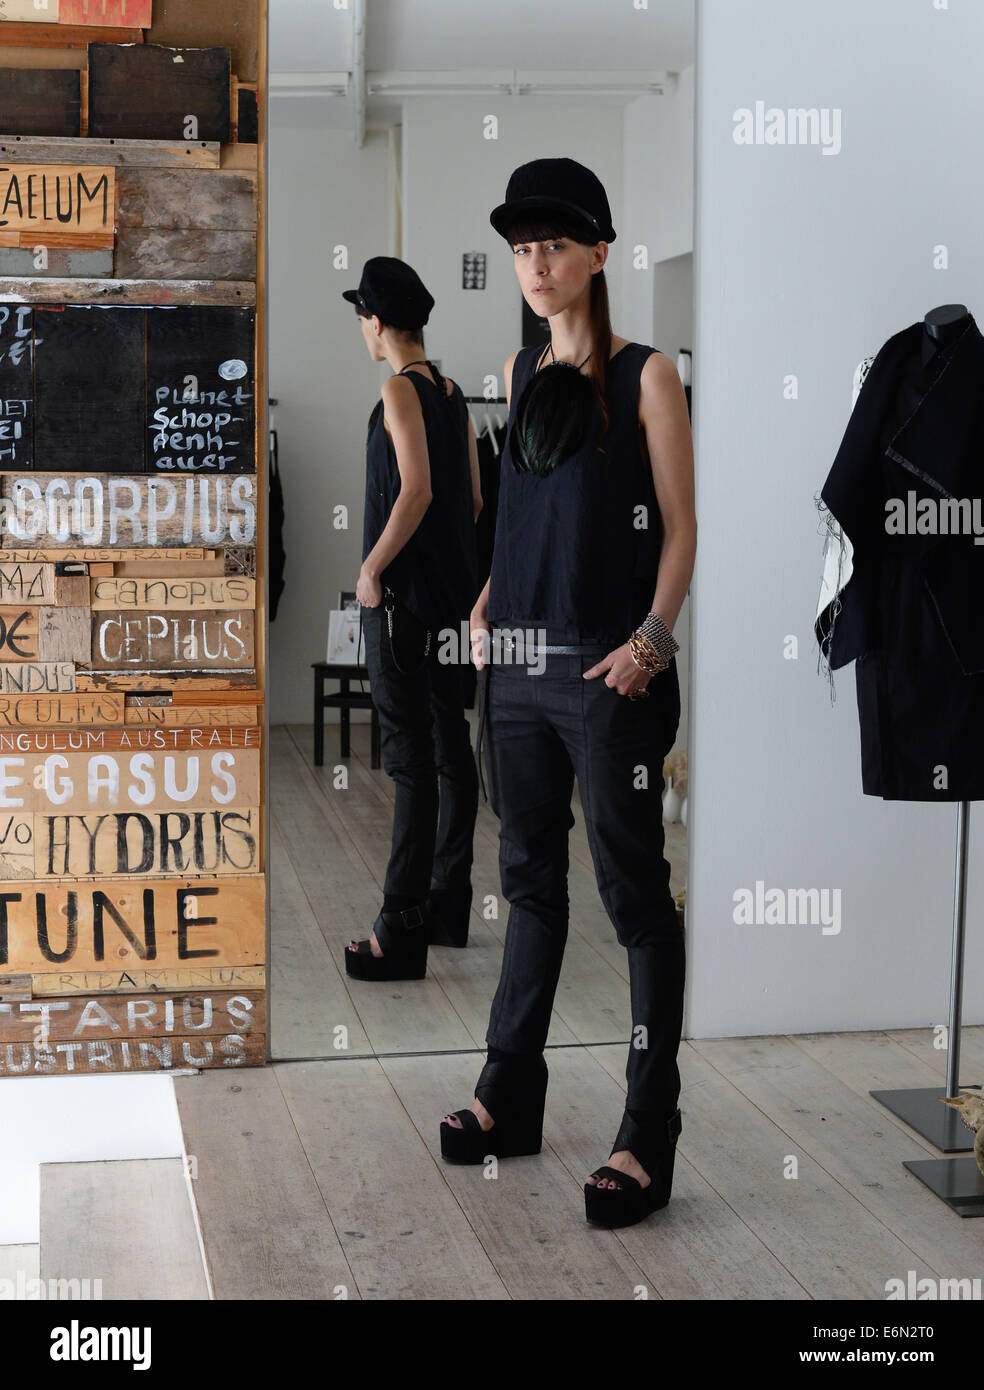 EXCLUSIVE - Berlin fashion designer Esther Perbandt is pictured in her studio on Almstadtstrasse in Berlin, Germany, - Stock Image